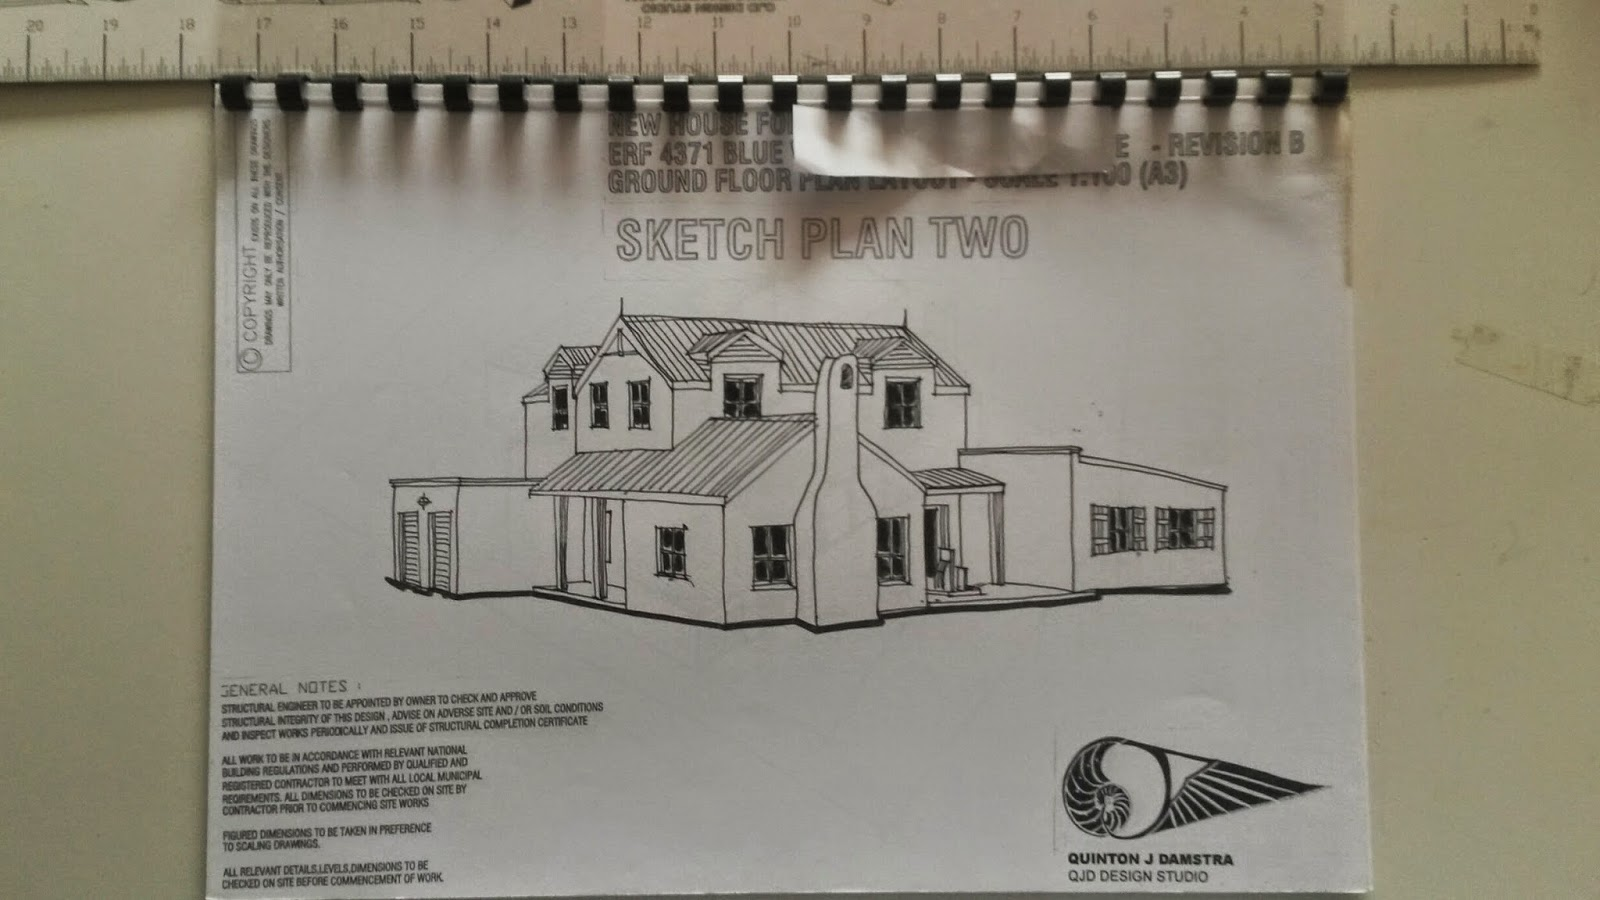 QJD Design studio wildetect: QJD architectural design studio ... on in ground architecture, ground floor house designs, in ground water, above ground house designs, in ground garage, in ground cooking, in ground home, in ground living room, villa floor plans and designs, underground home designs,